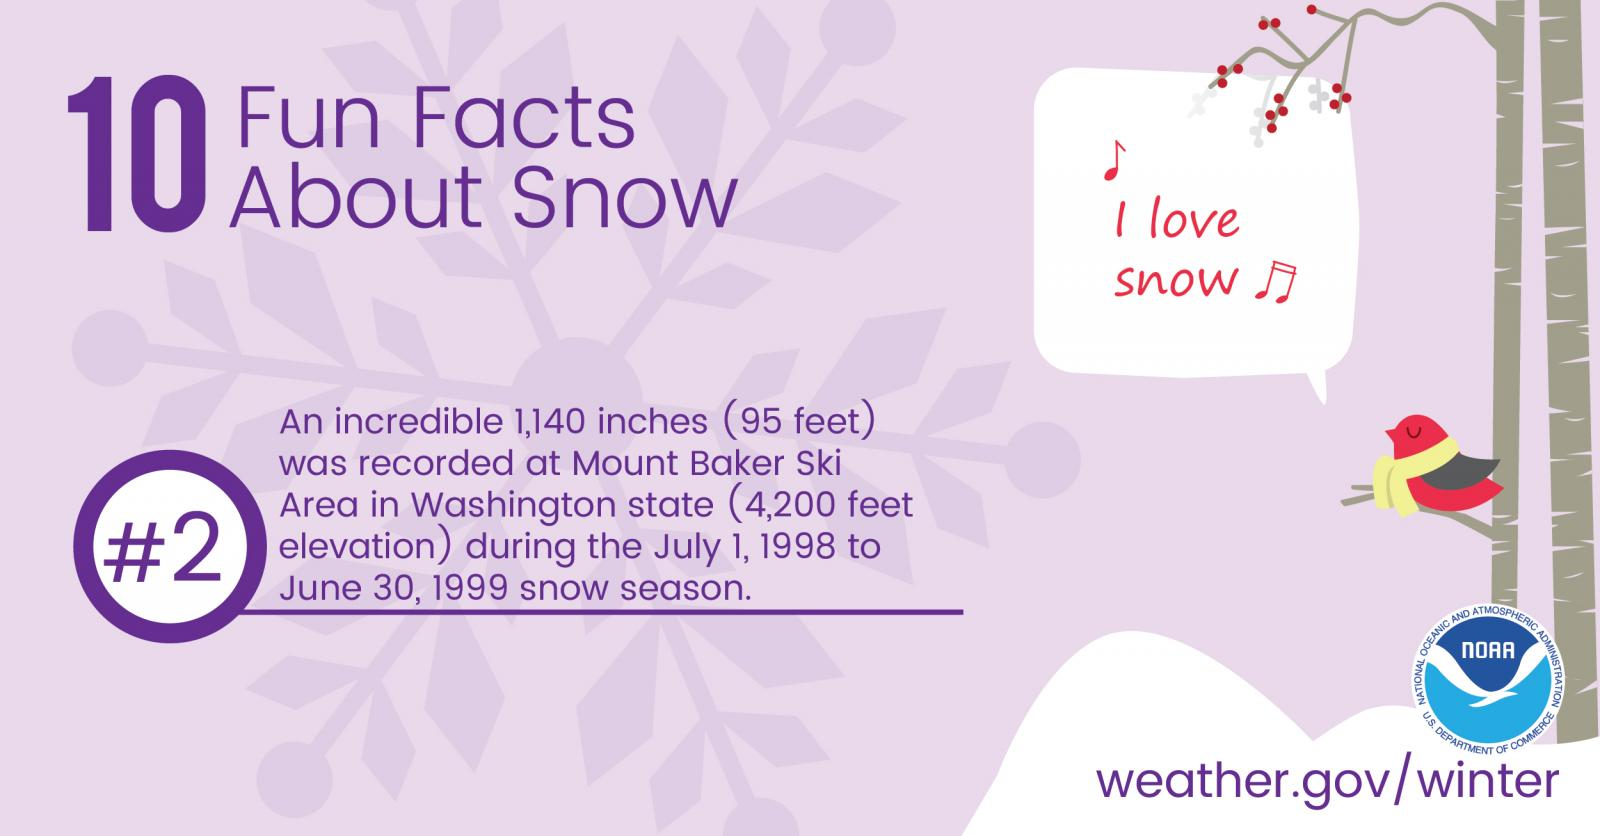 10 Fun Facts About Snow: #2. An incredible 1,140 inches (95 feet) was recorded at Mount Baker Ski Area in Washington State (4,200 feet elevation) during the July 1, 1998 to June 30, 1999 snow season.